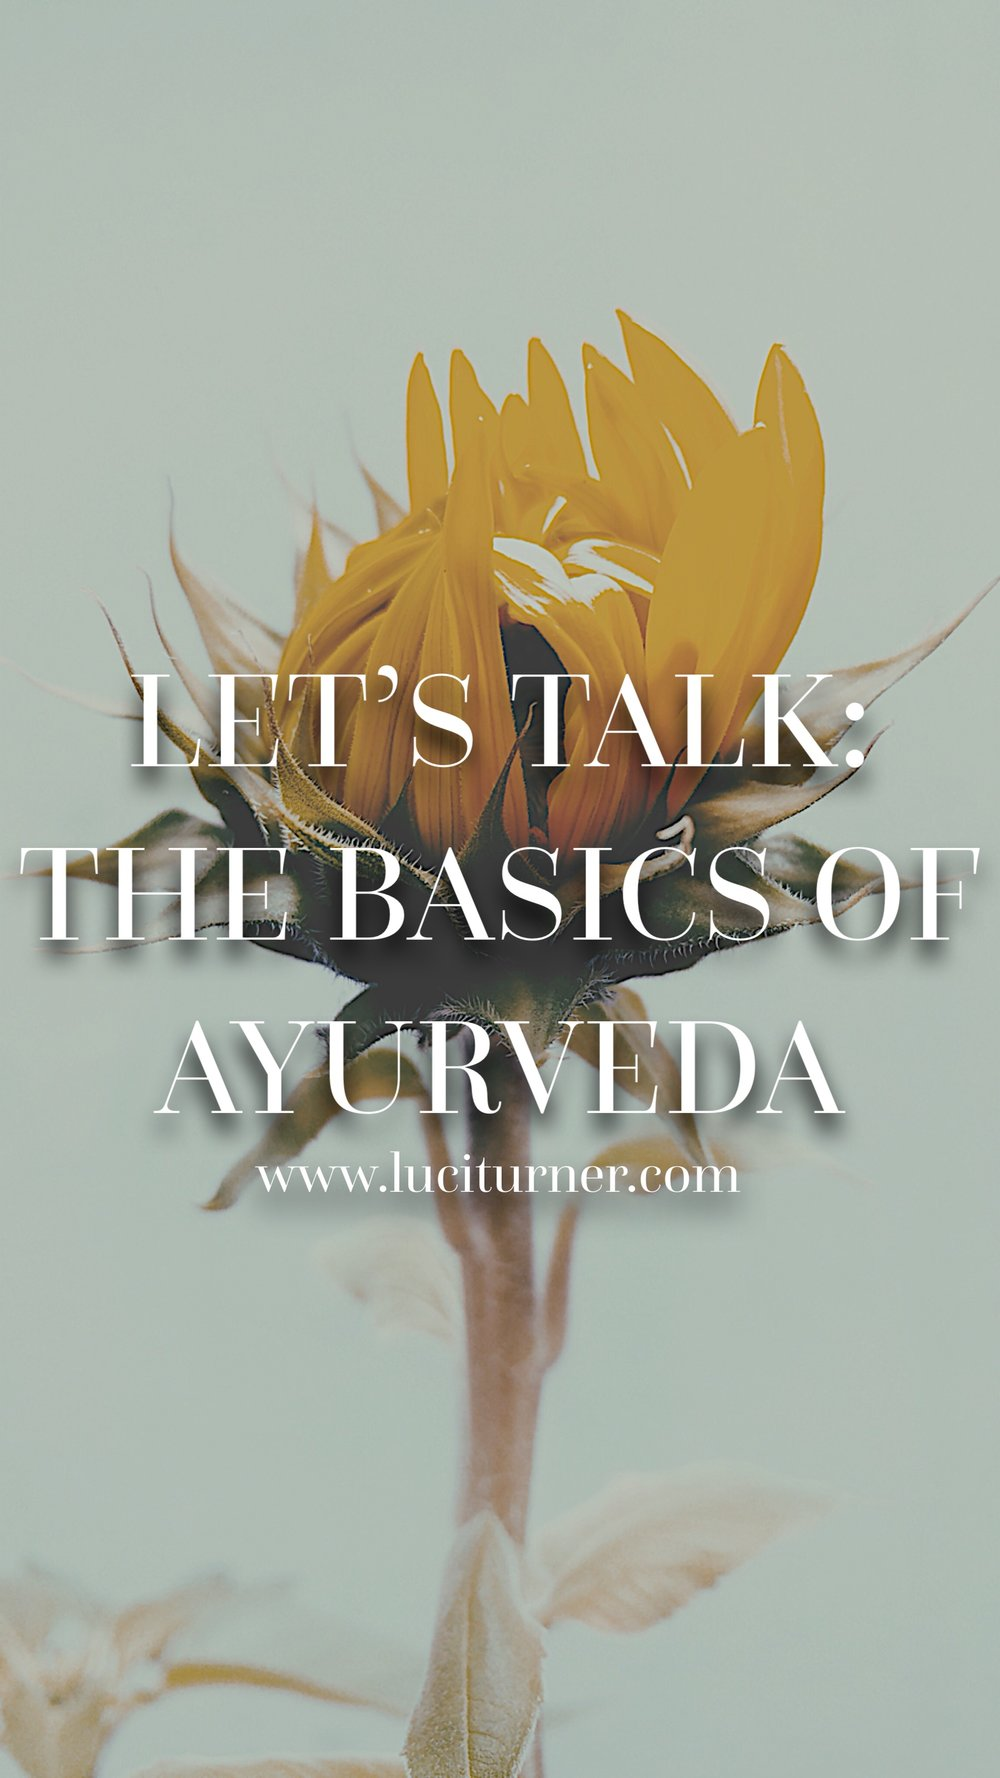 ayurveda, ayurvedic medicine, ayurveda for beginners, basics of ayurveda, holistic medicine, lifestyle blog, wellness blog, health blog, yoga blog, meditation, mindfulness, meditation for beginners,